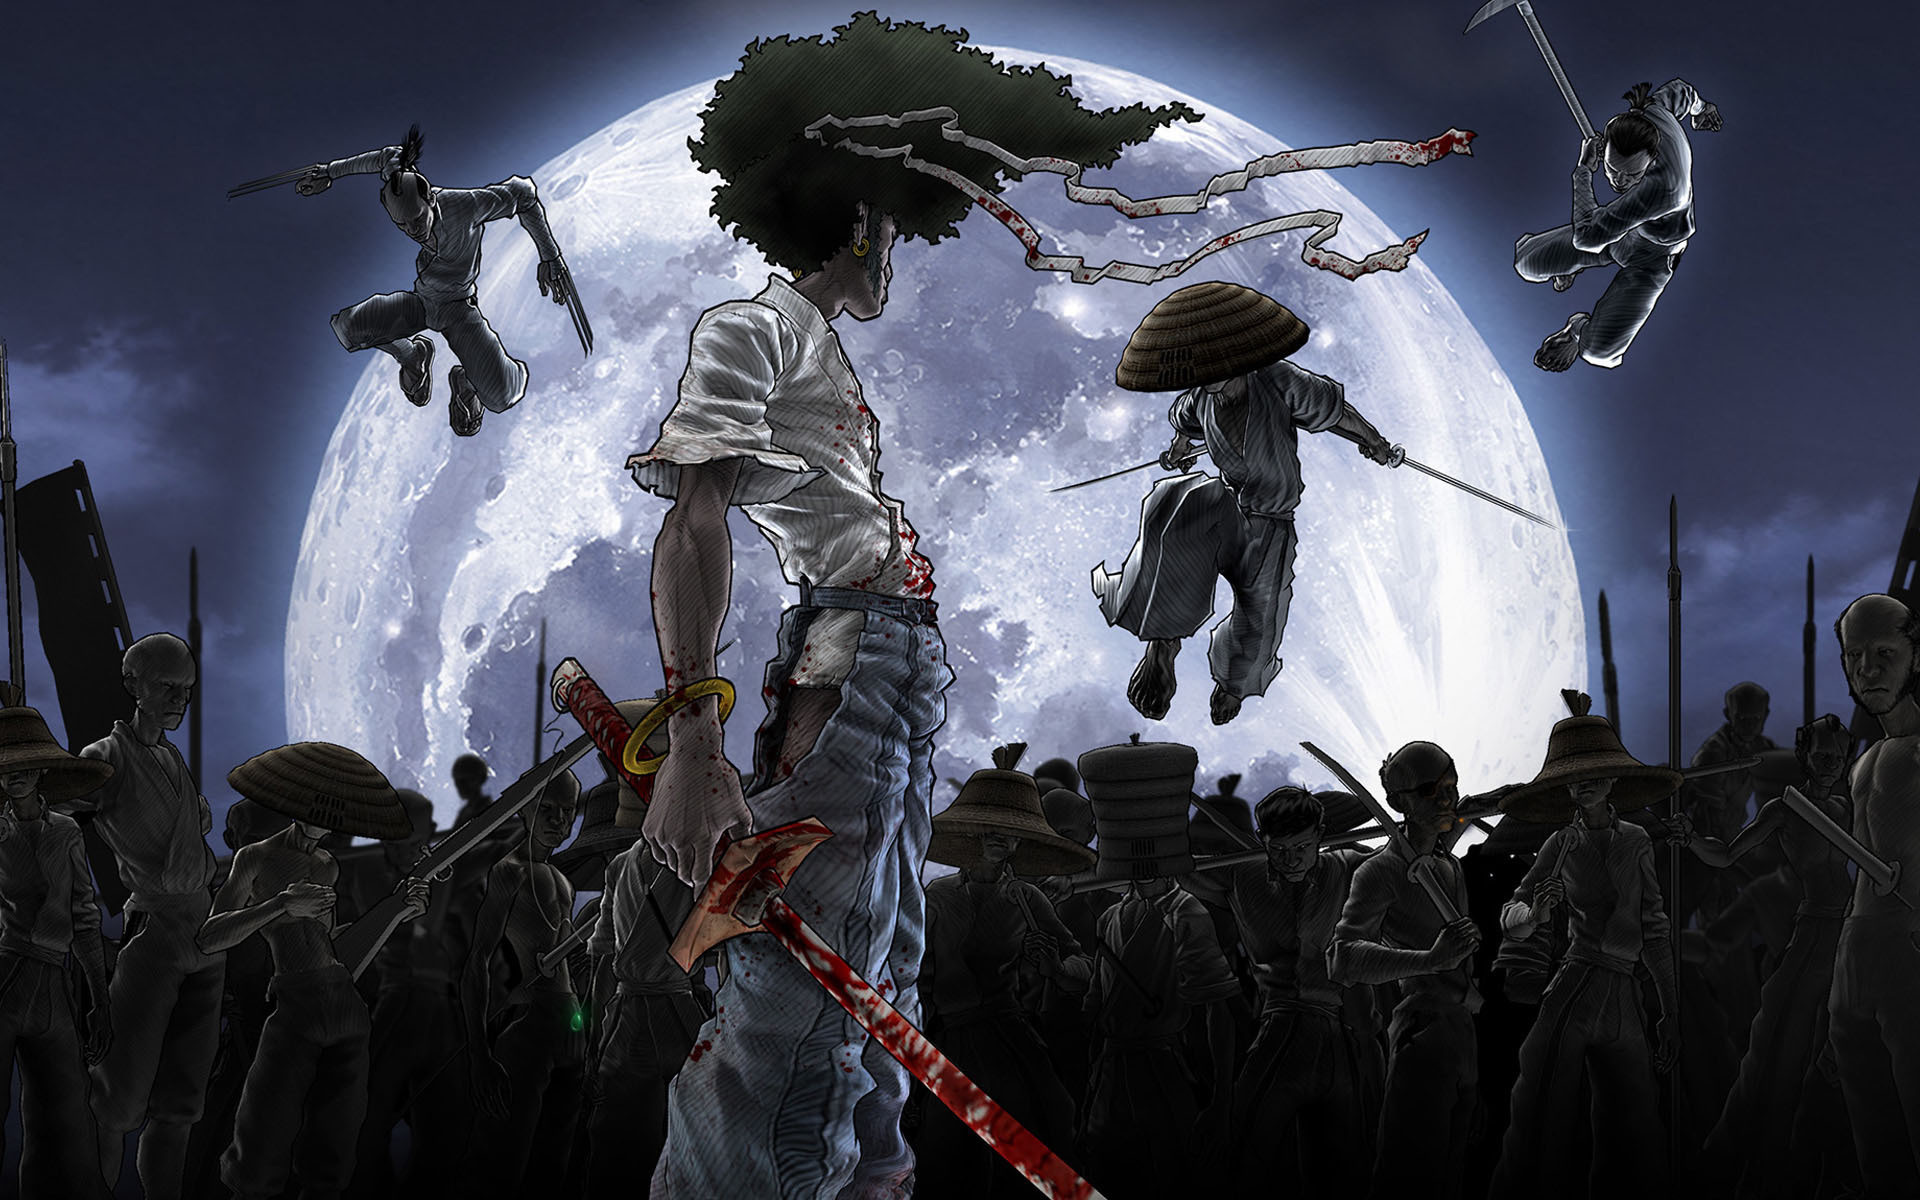 1920x1200 afro samurai resurrection wallpaper Afro Samurai Resurrection Wallpaper, 37  Afro Samurai Resurrection Images and Wallpapers